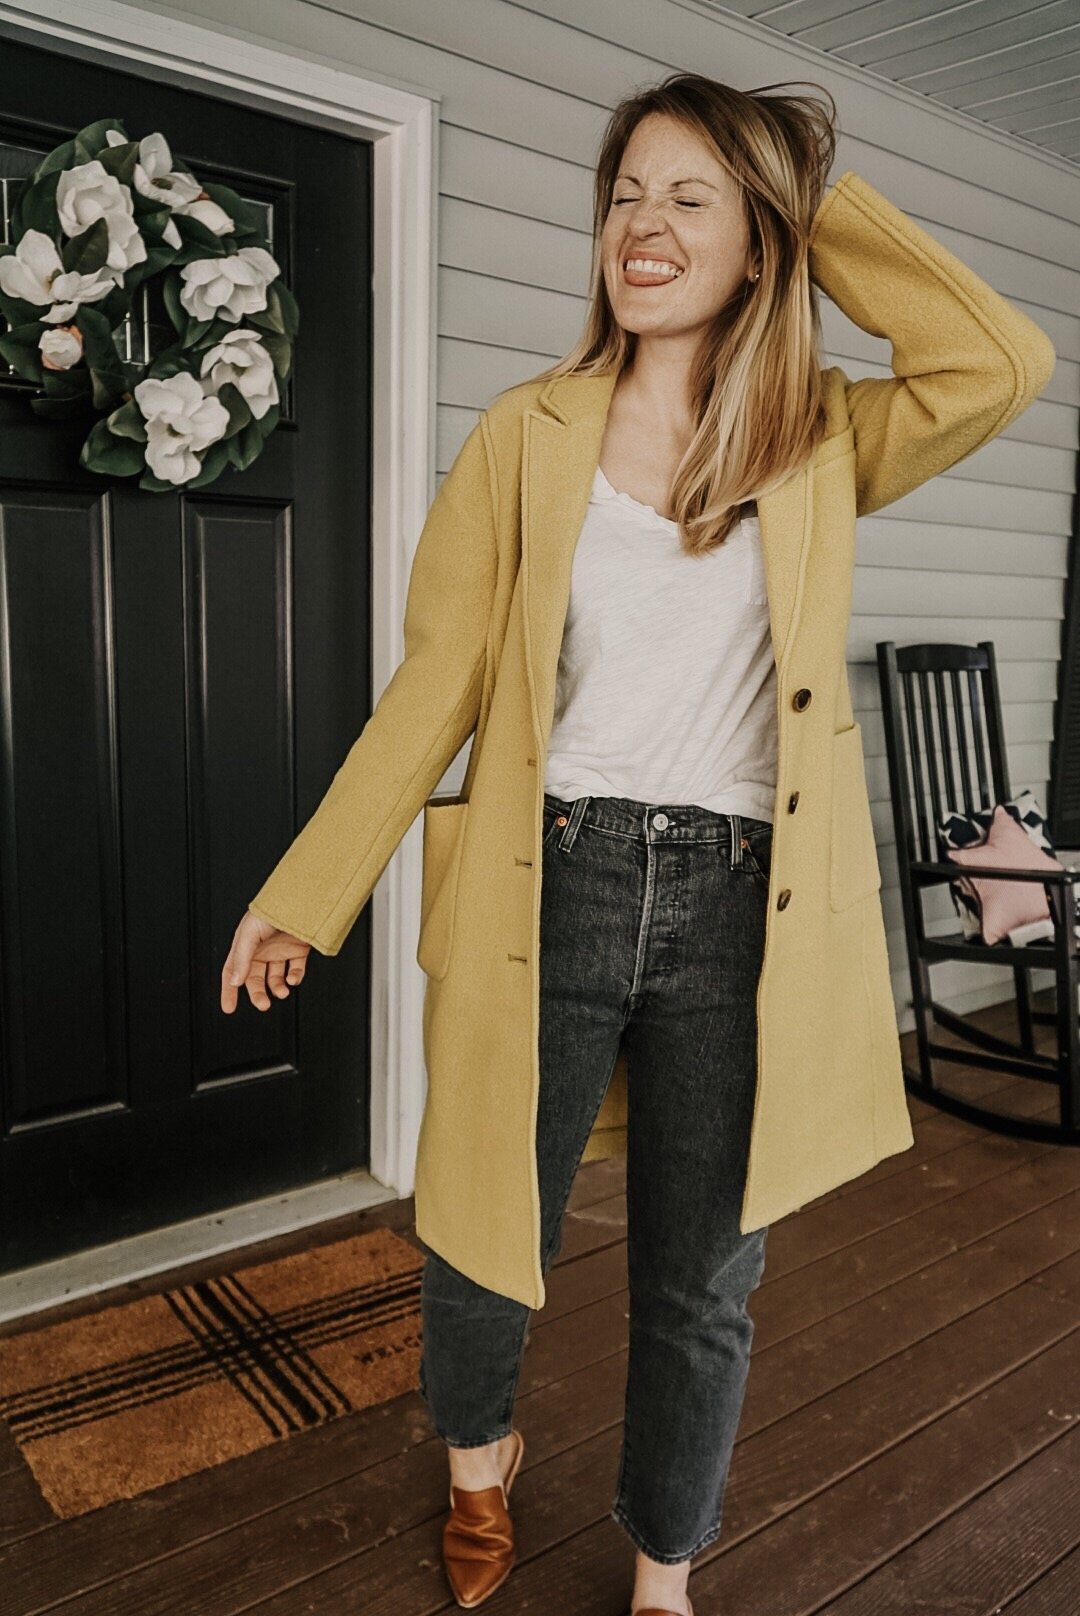 The Nordstrom Anniversary Sale: A Different Approach